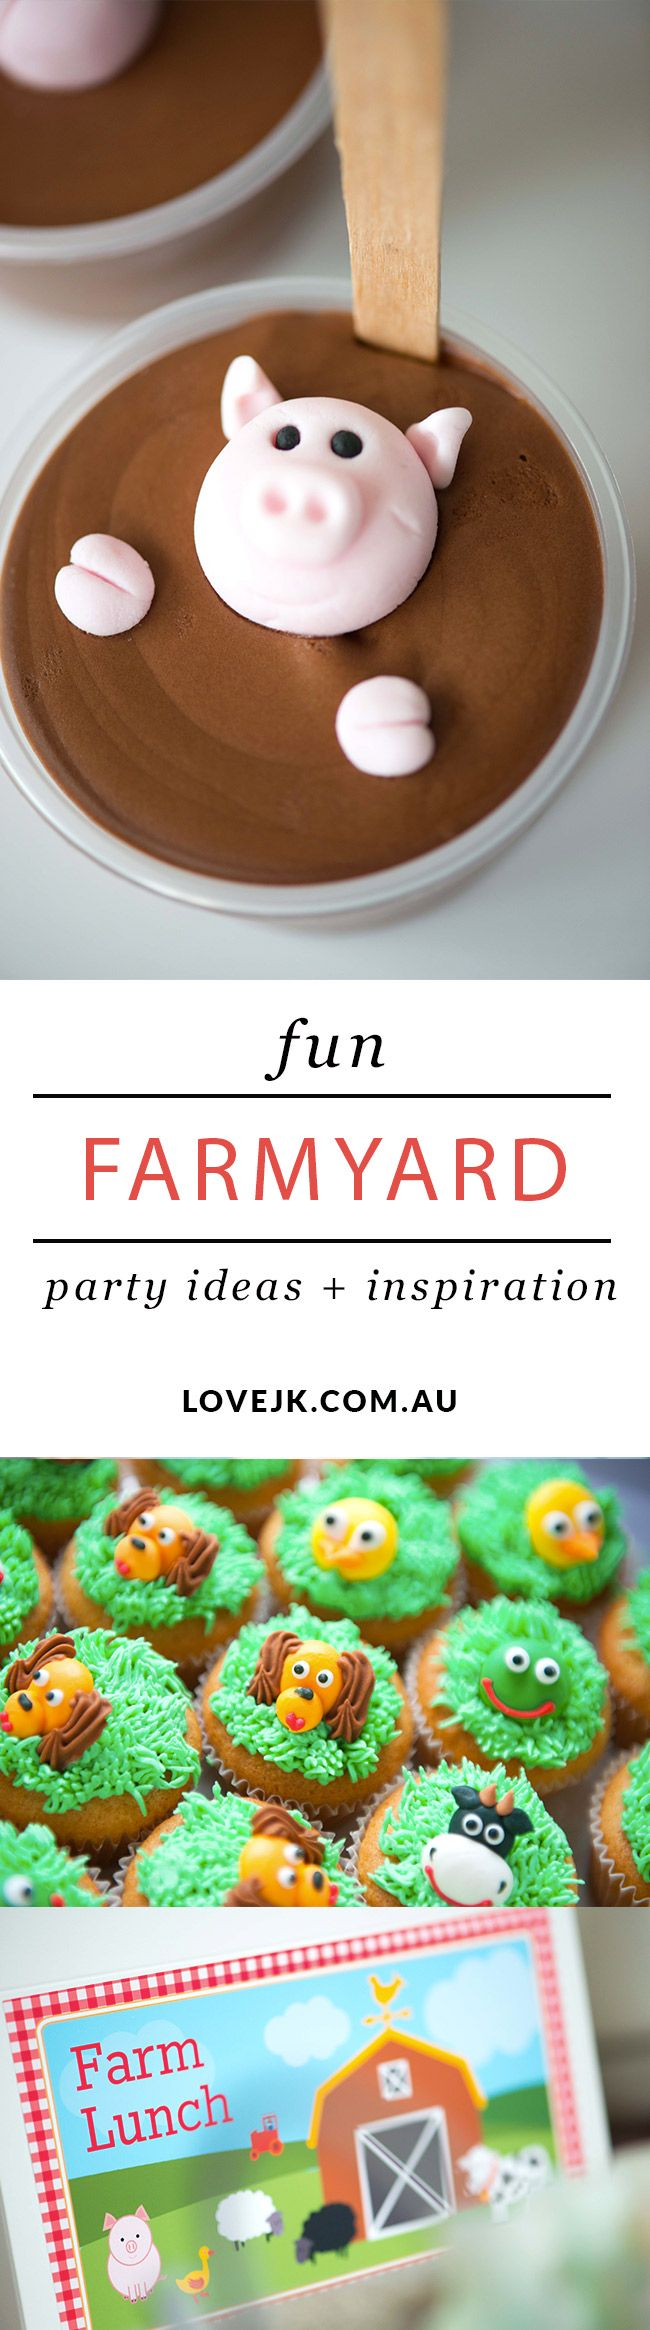 Farmyard Party Ideas - Cheky animal cupcakes, Pigs in mud mousse and lovely Farm Lunch lunch boxes!